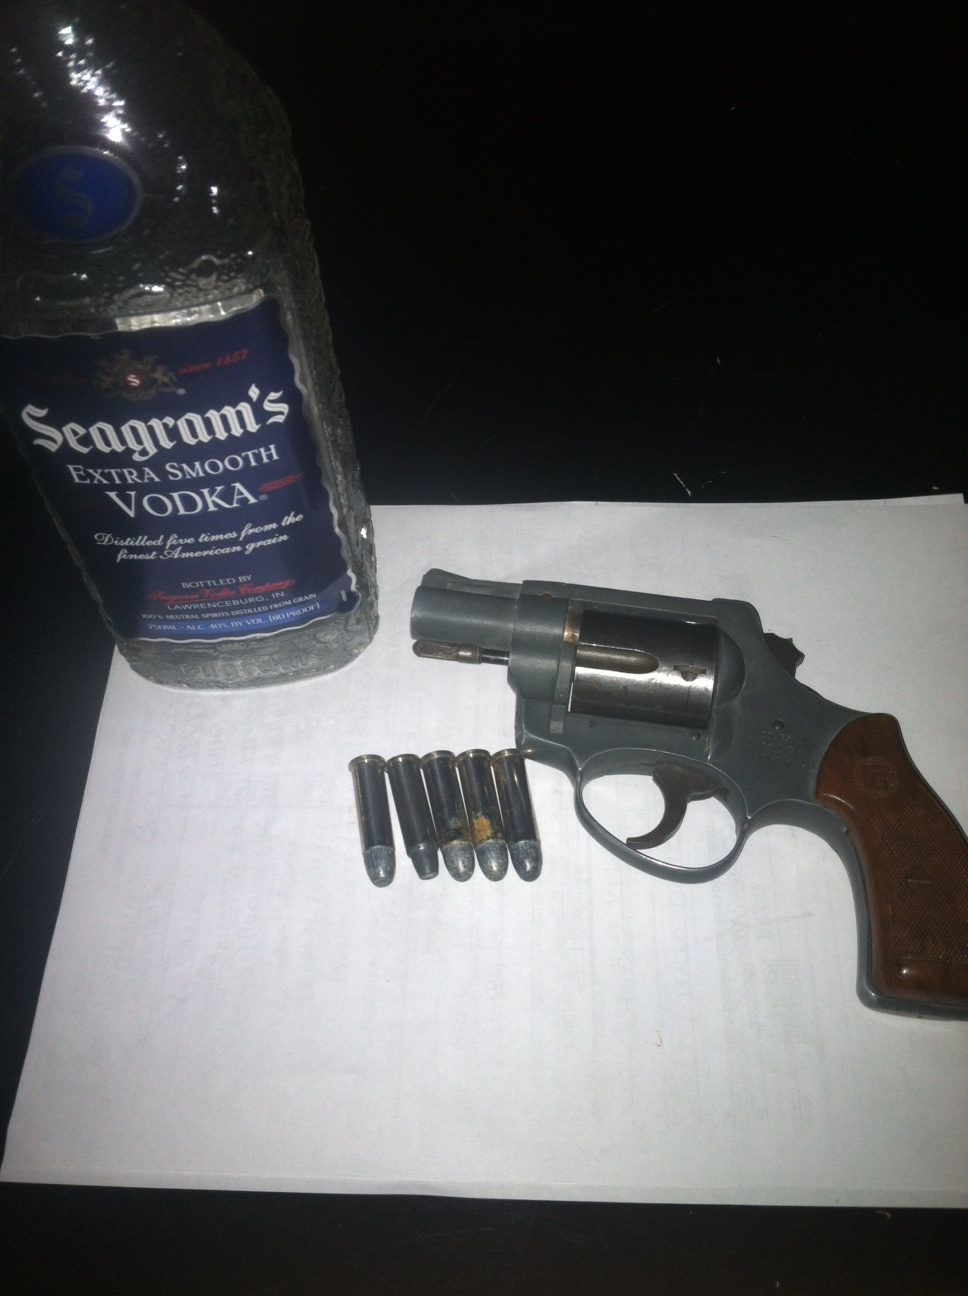 Gun recovered on March 20, 2013